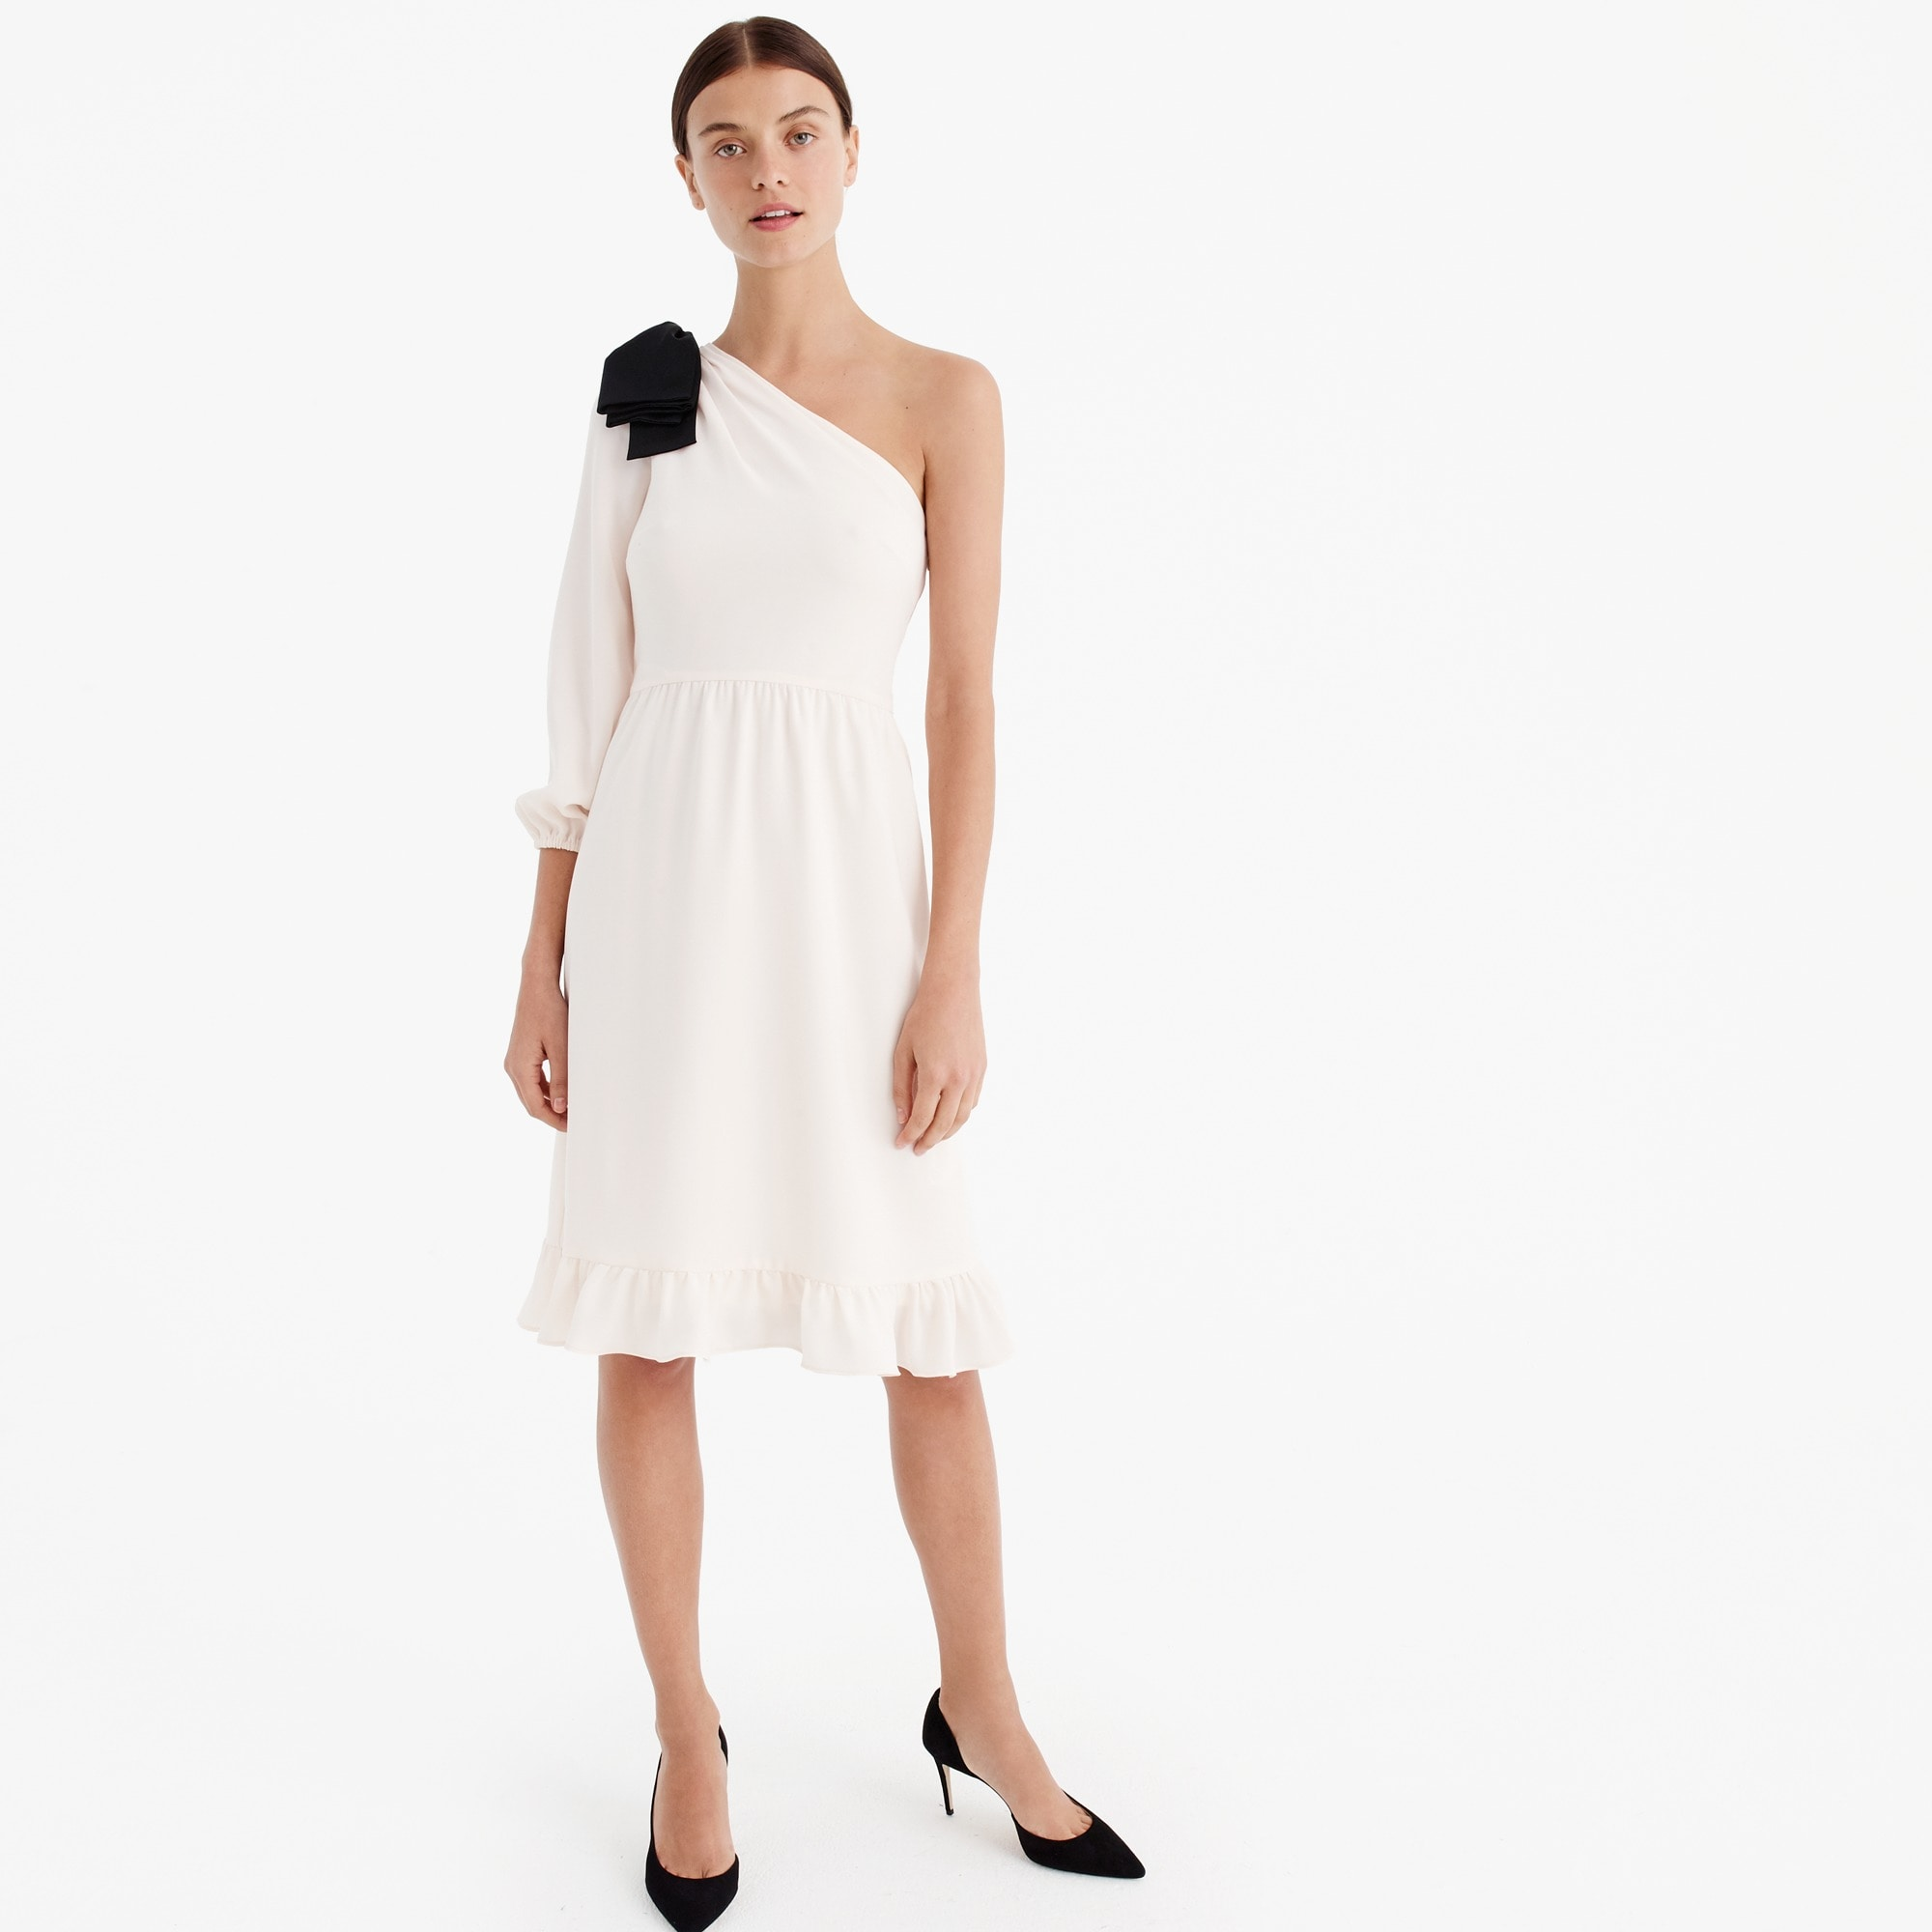 one-shoulder dress with bow : women ready-to-party collection